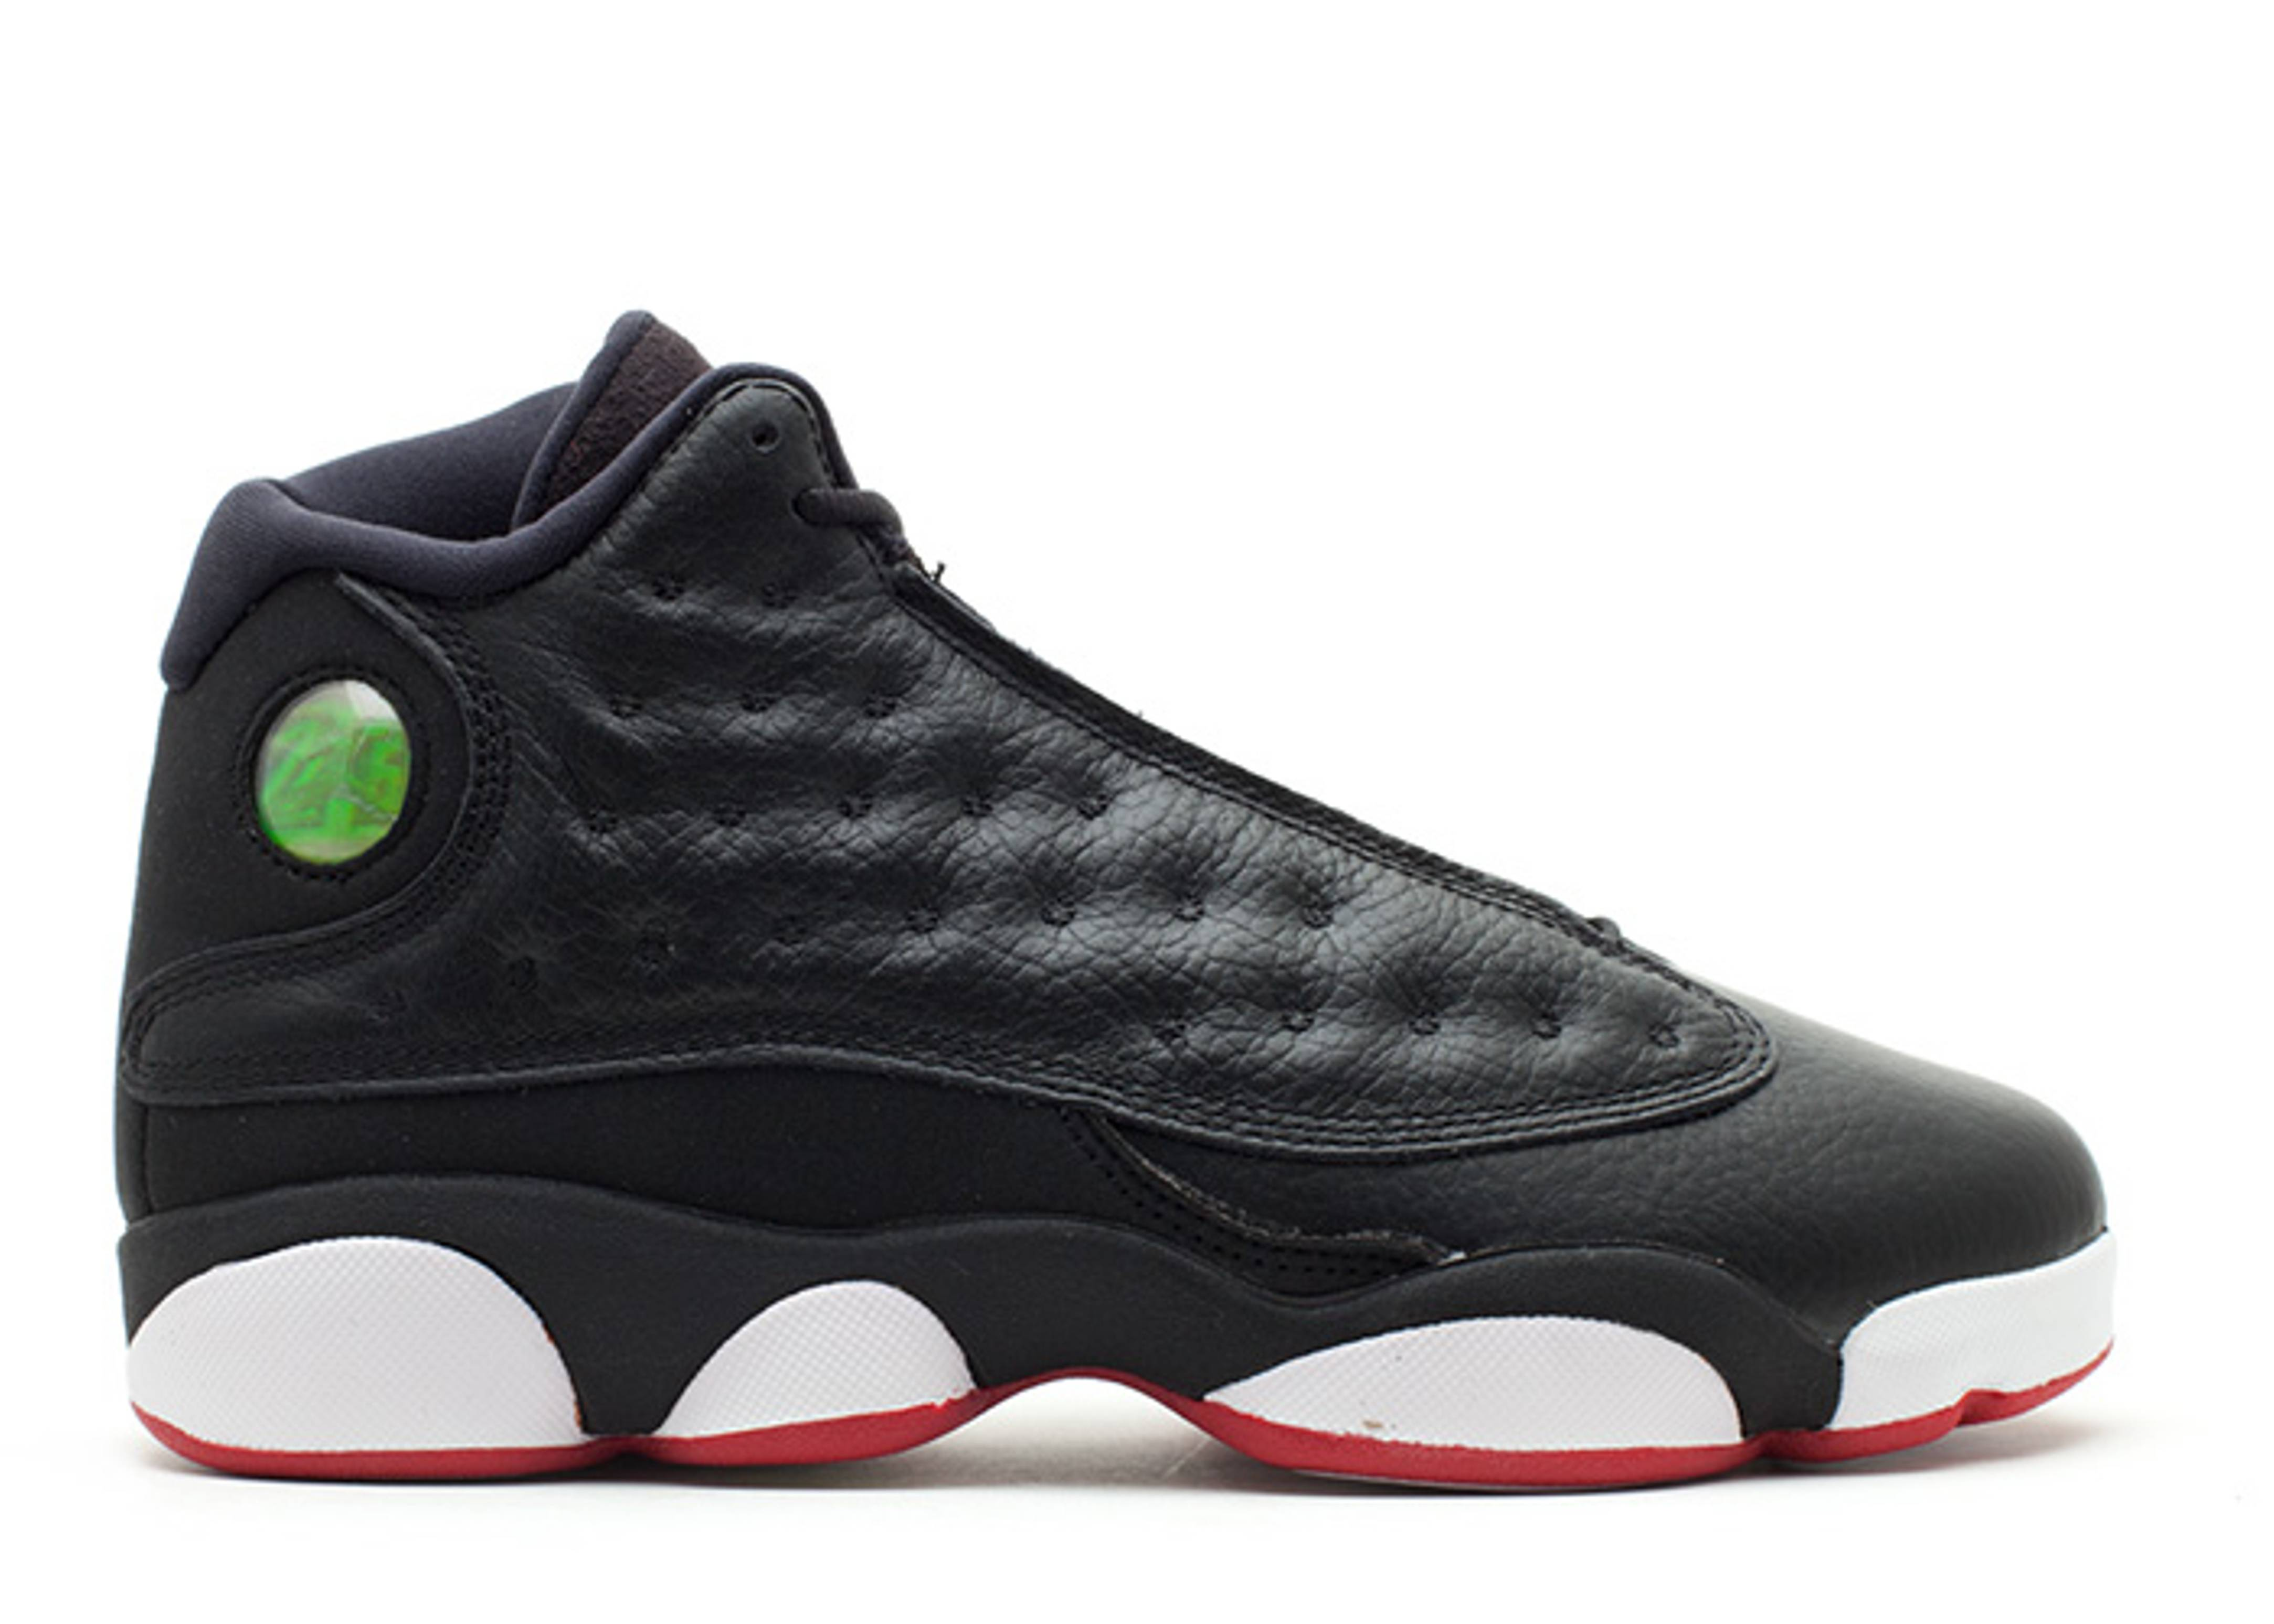 jordan 13 retro gs playoff